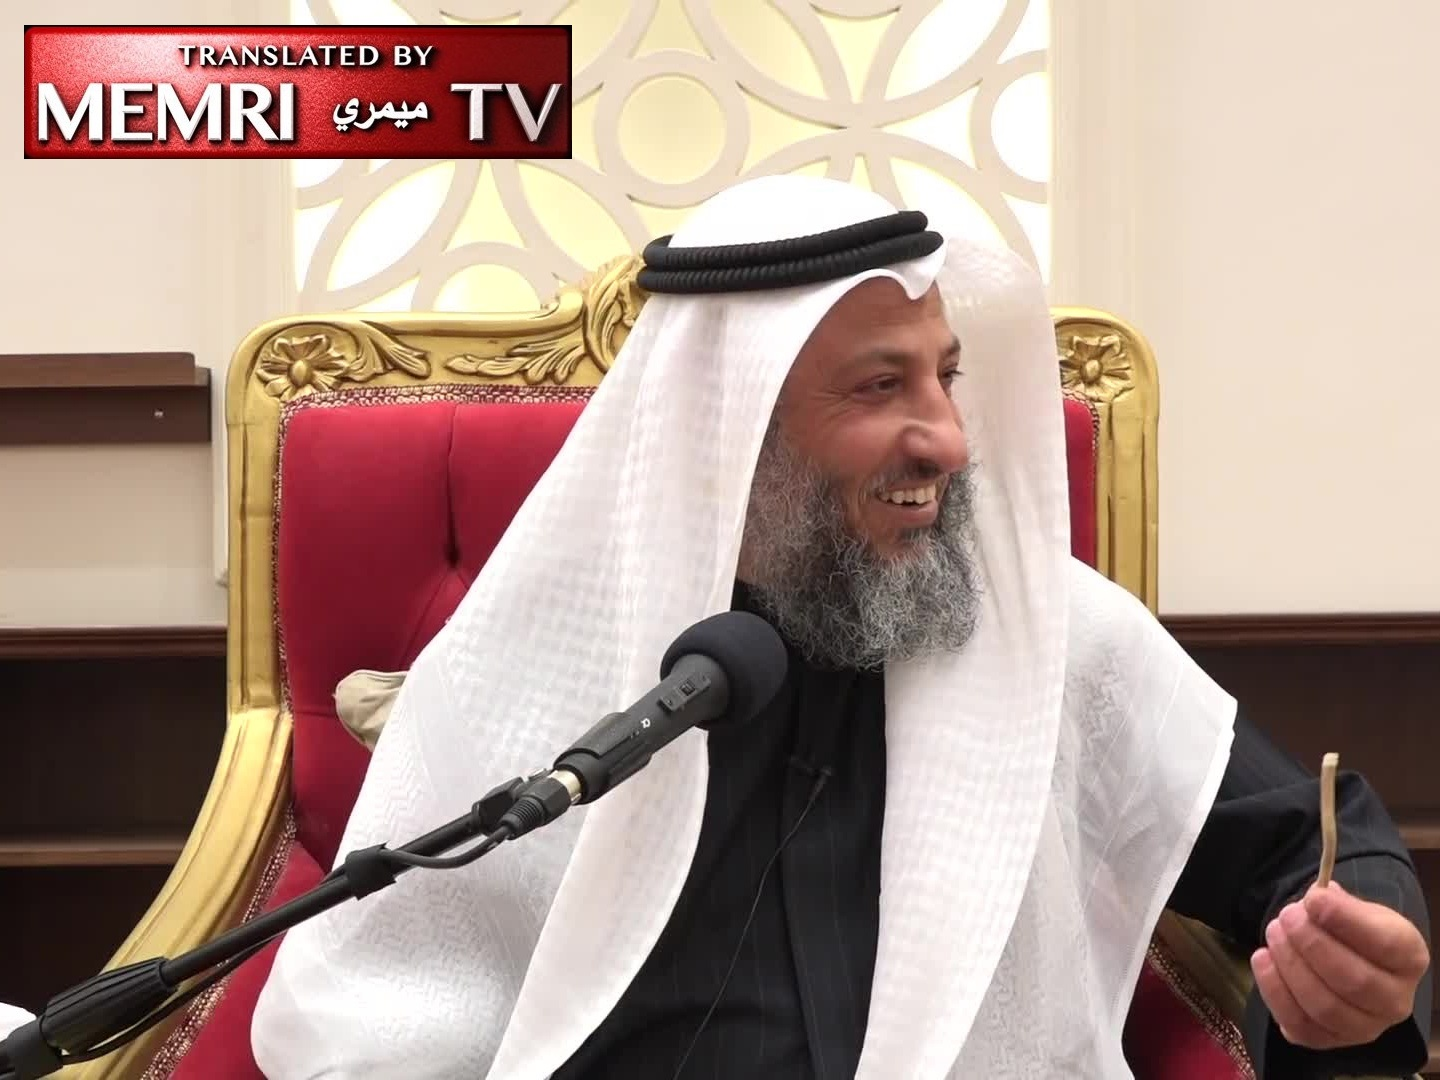 Kuwaiti Cleric on Wife Beating: Not Hard and Not on the Face